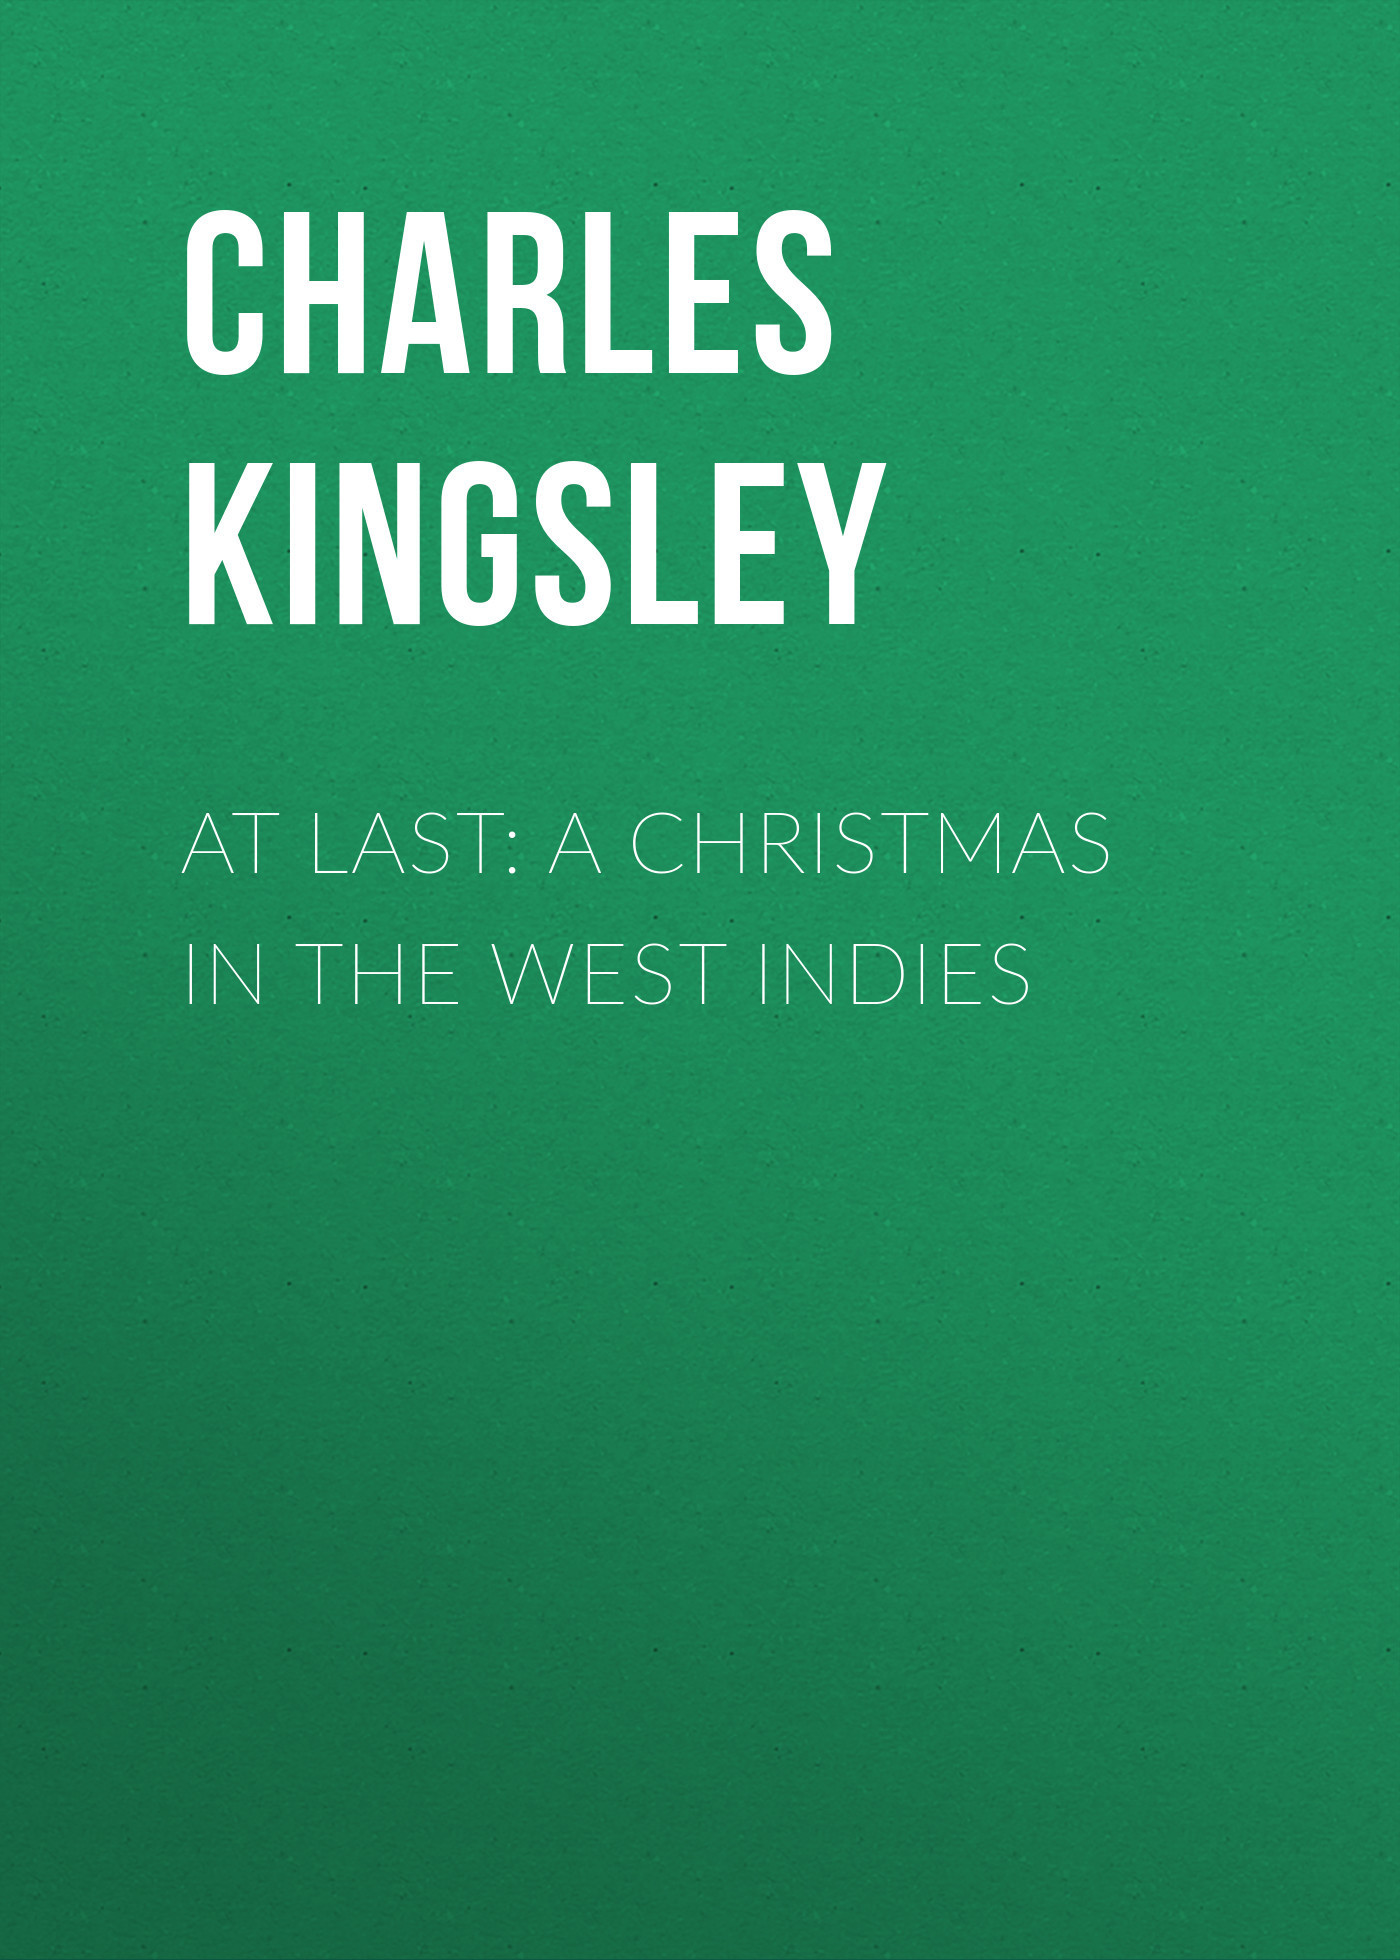 Charles Kingsley At Last: A Christmas in the West Indies charles peirce s guess at the riddle – grounds for human significance paper